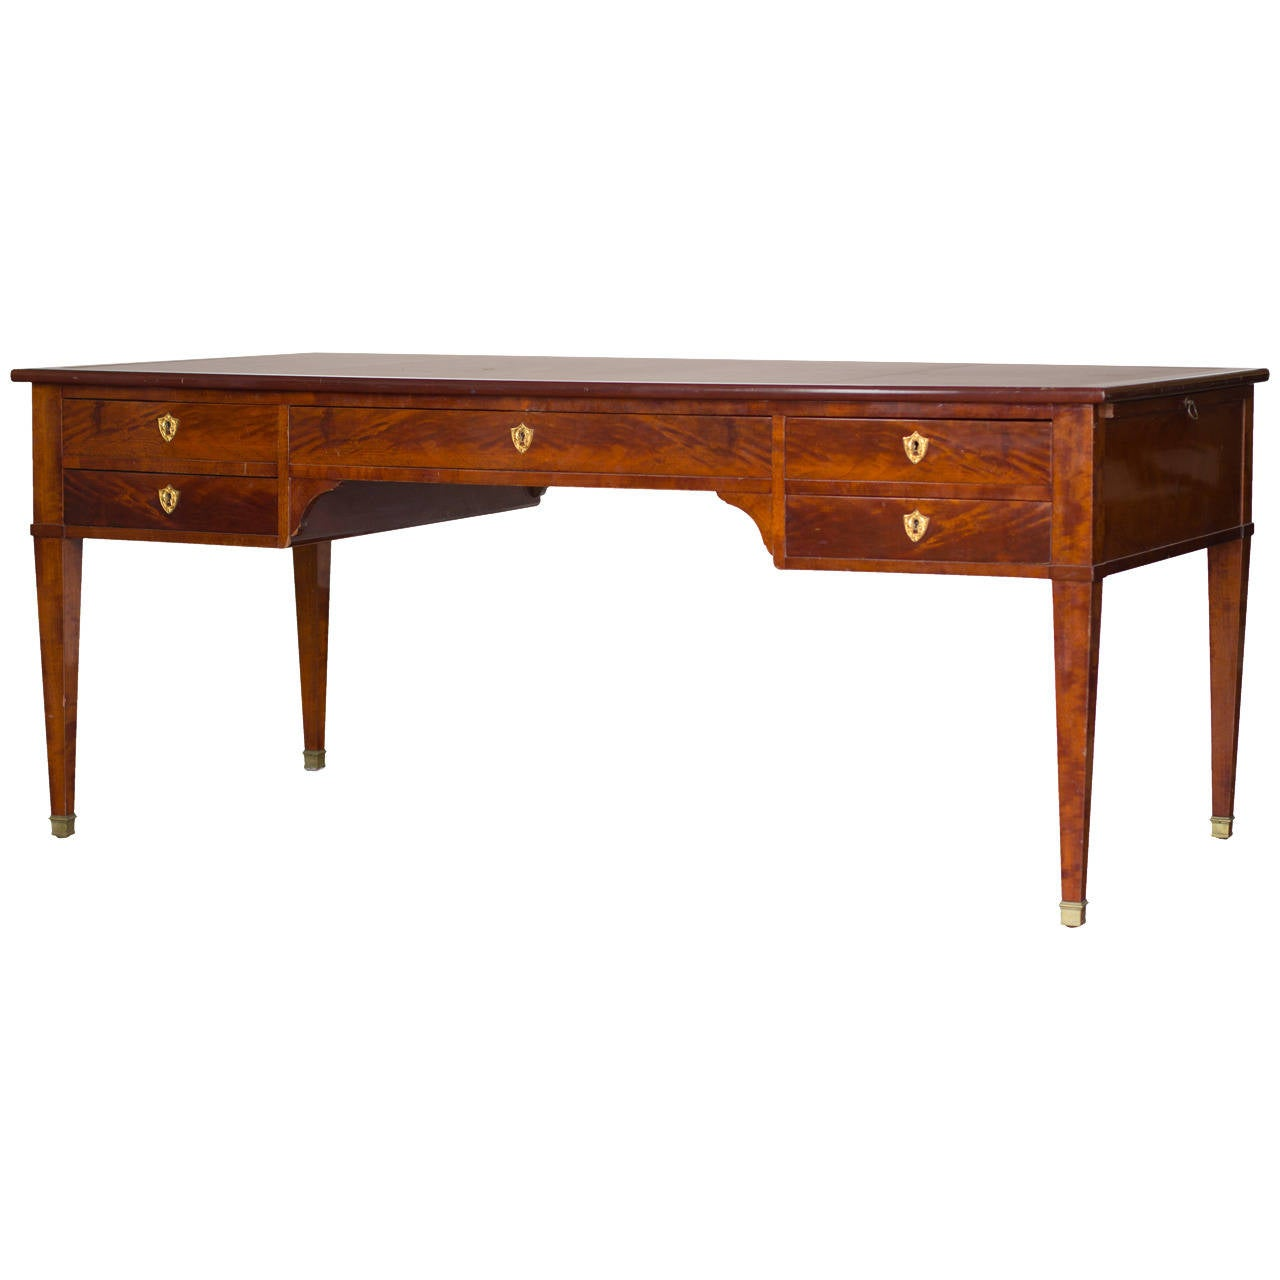 1940 Directoire Style Desk with Inset Leather Top For Sale